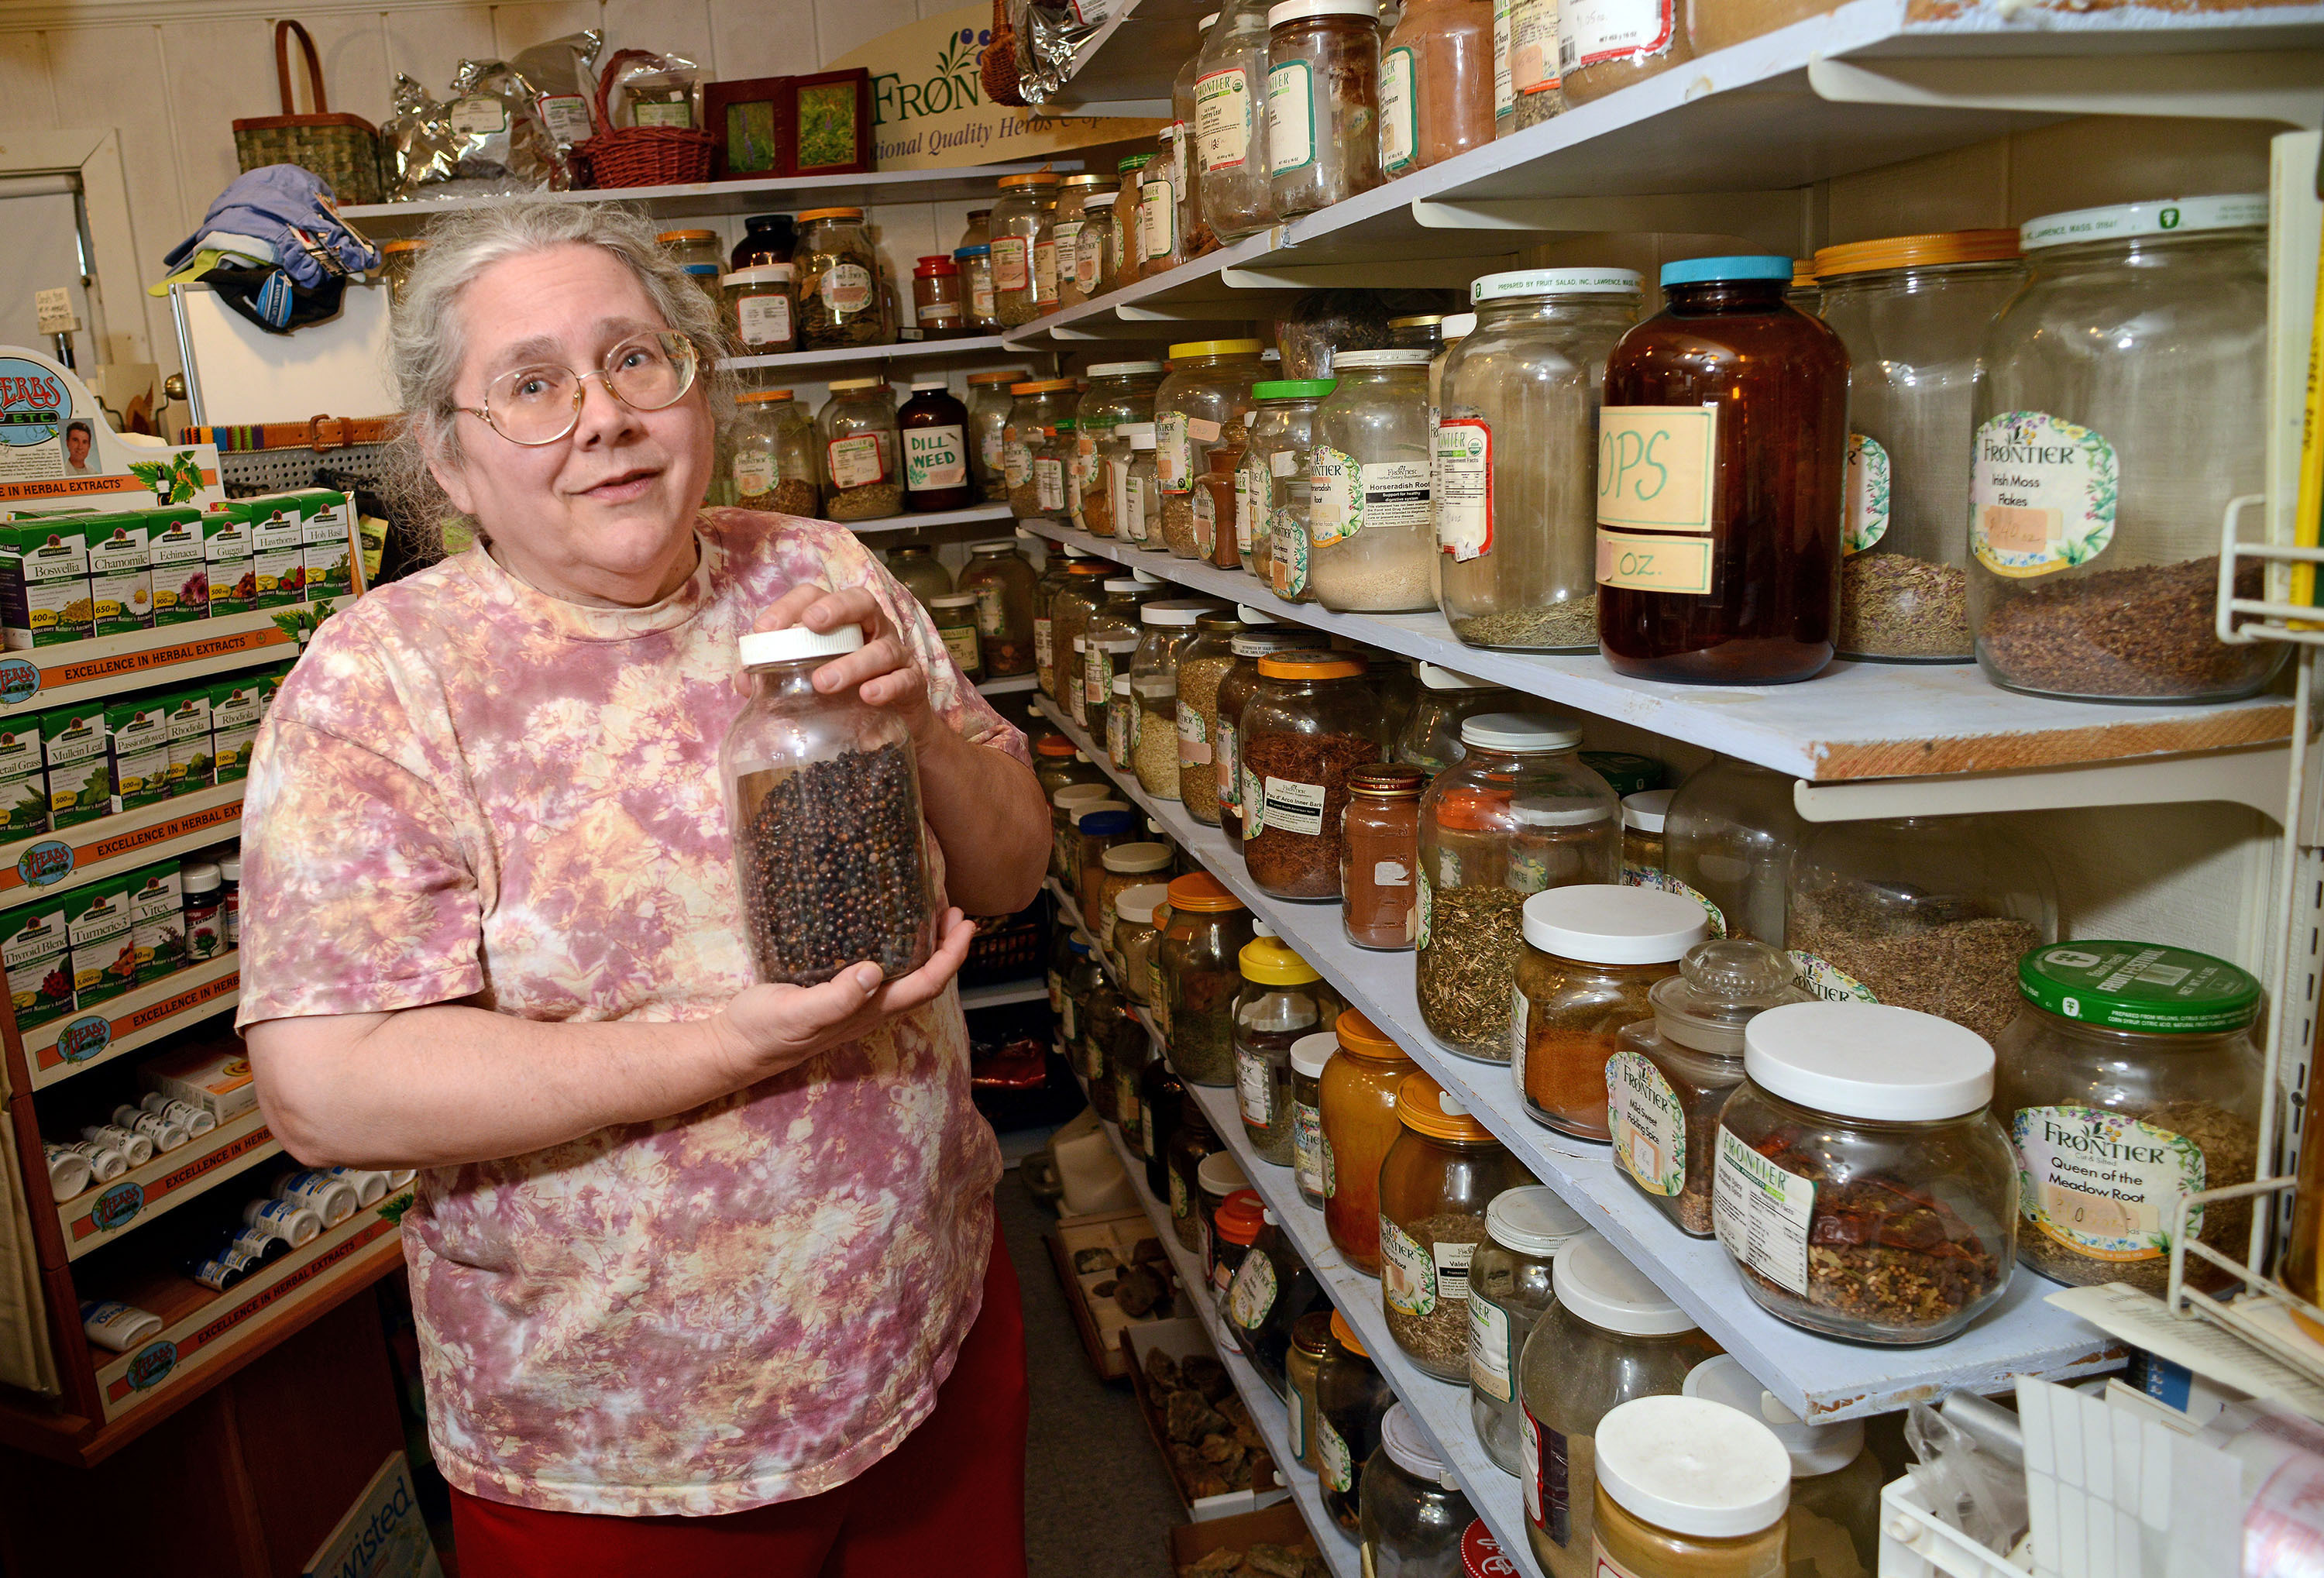 Karen Stauffer, shows some of the herbal items she sells at her River of Life Natural Foods store in Lahaska, Pa. W